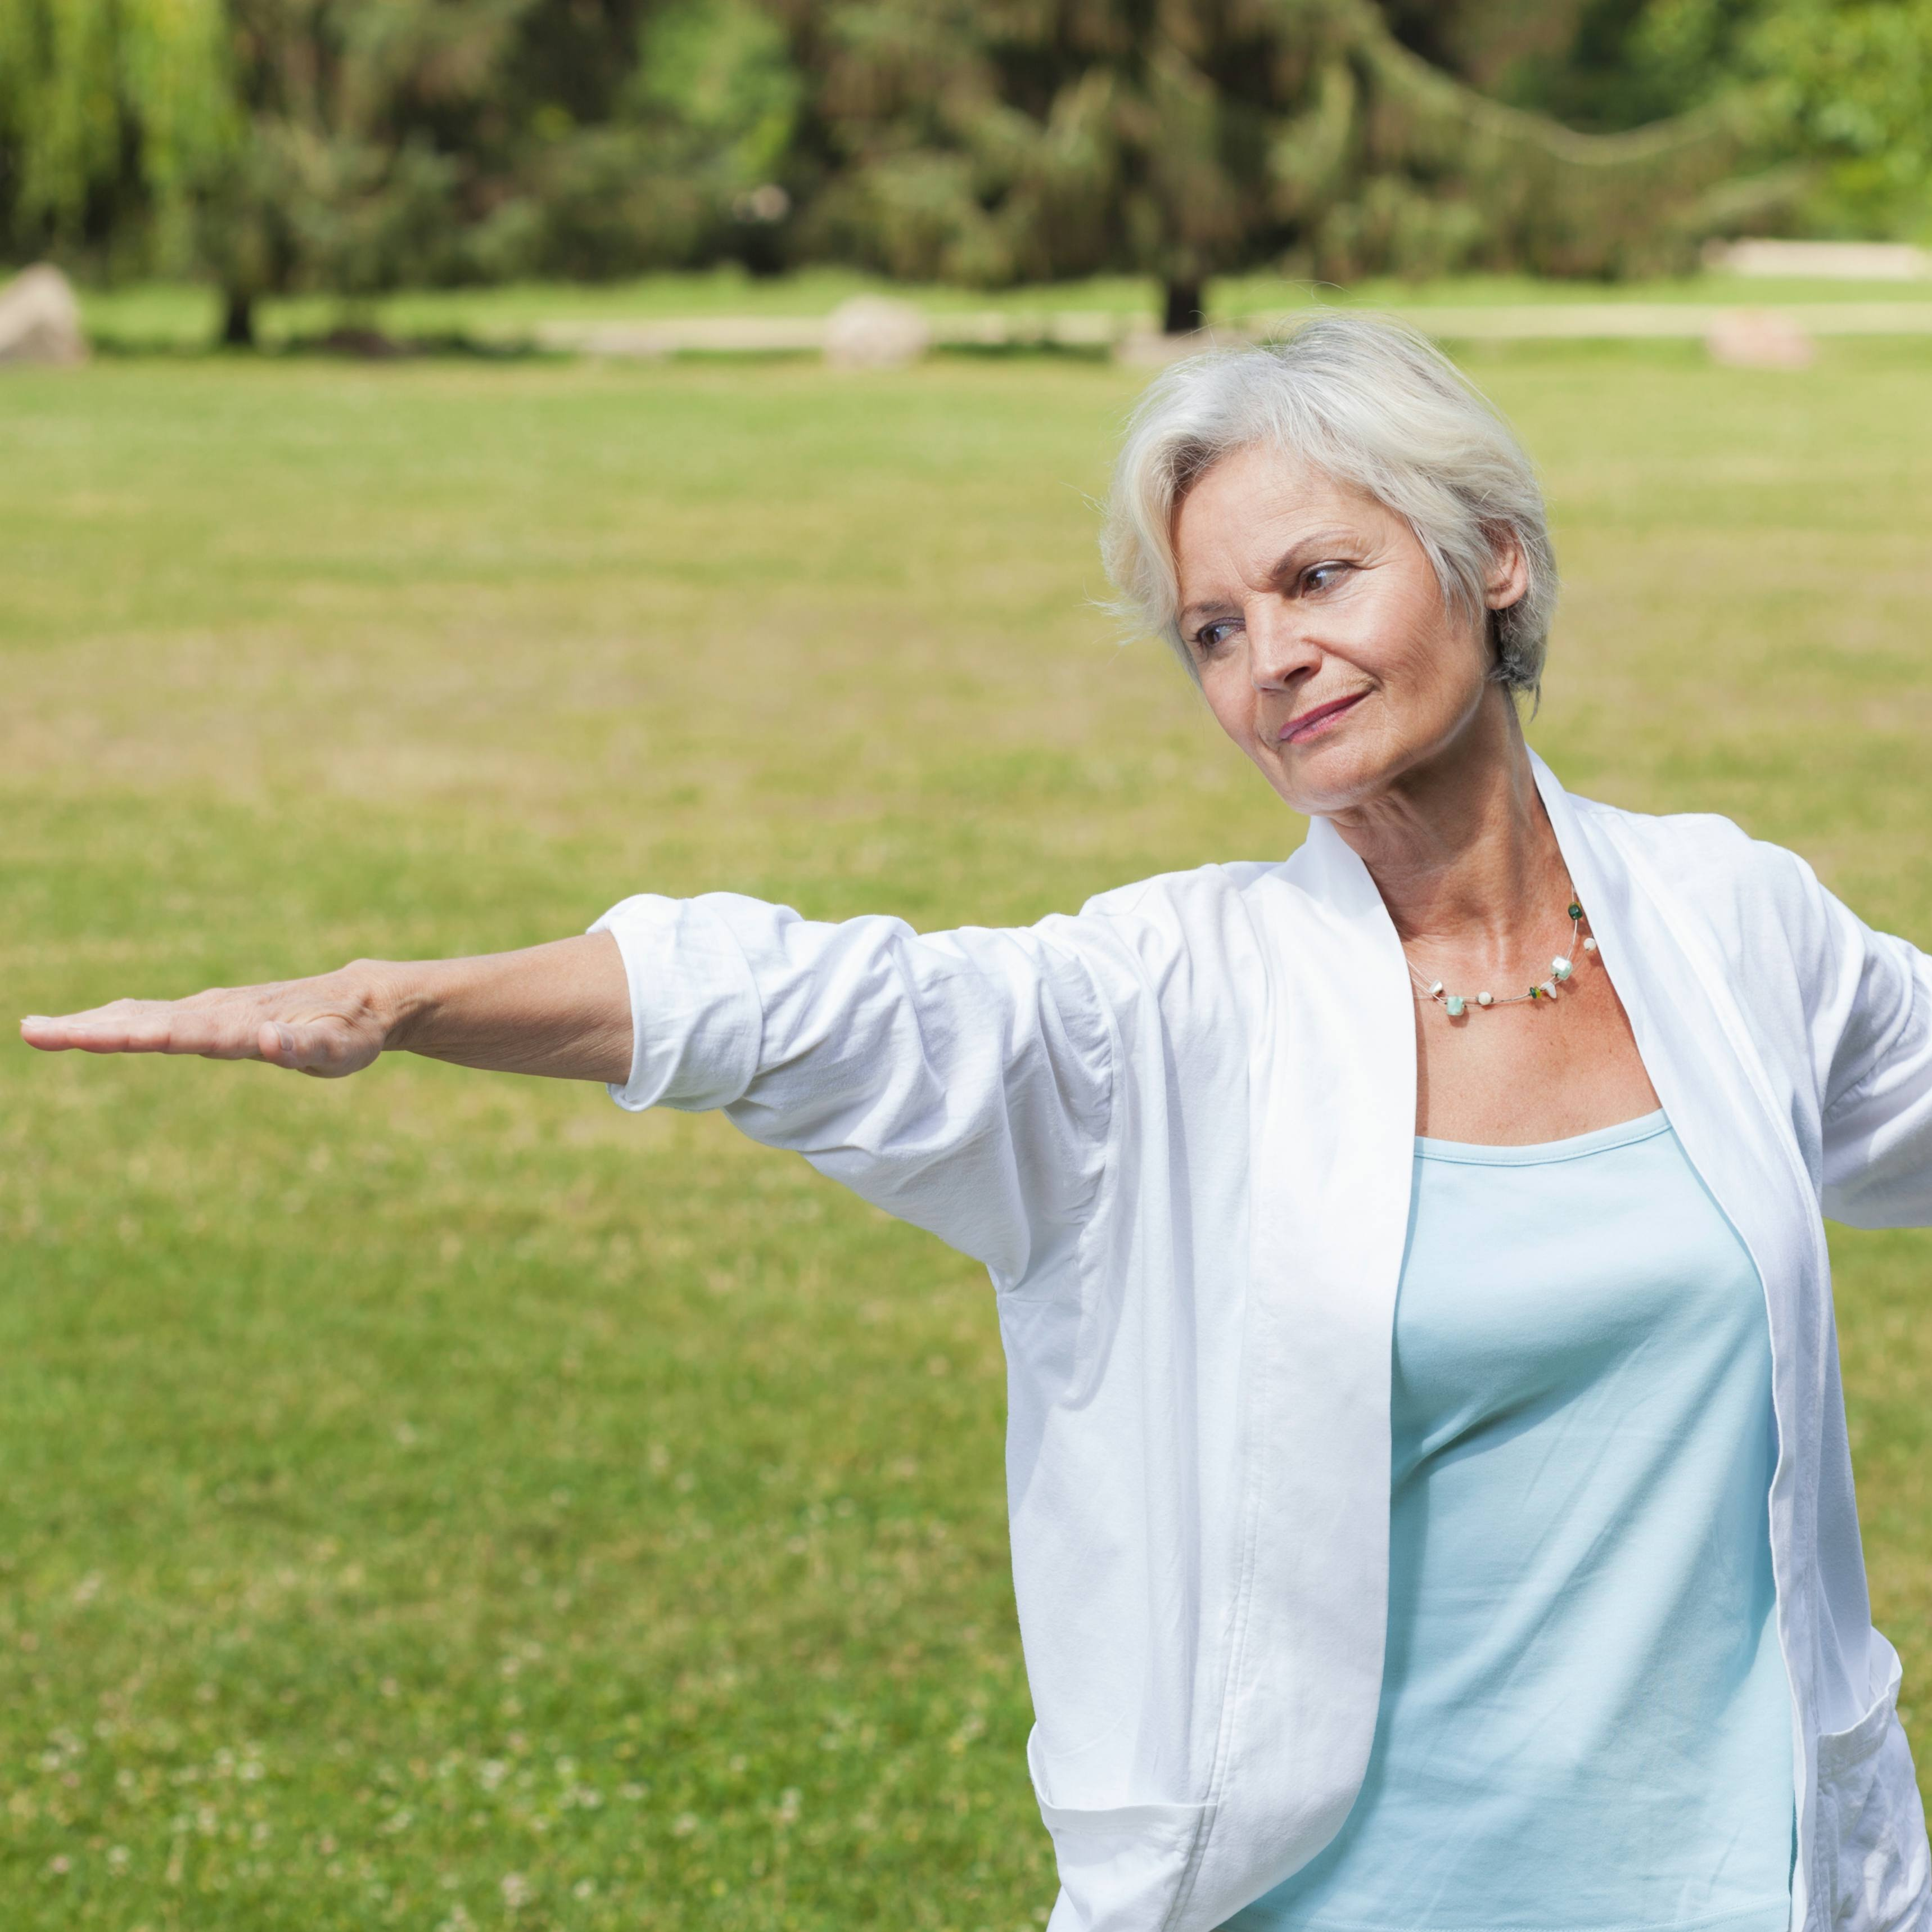 an older women outside on green grass exercising and practicing the art of tai chi for balancing